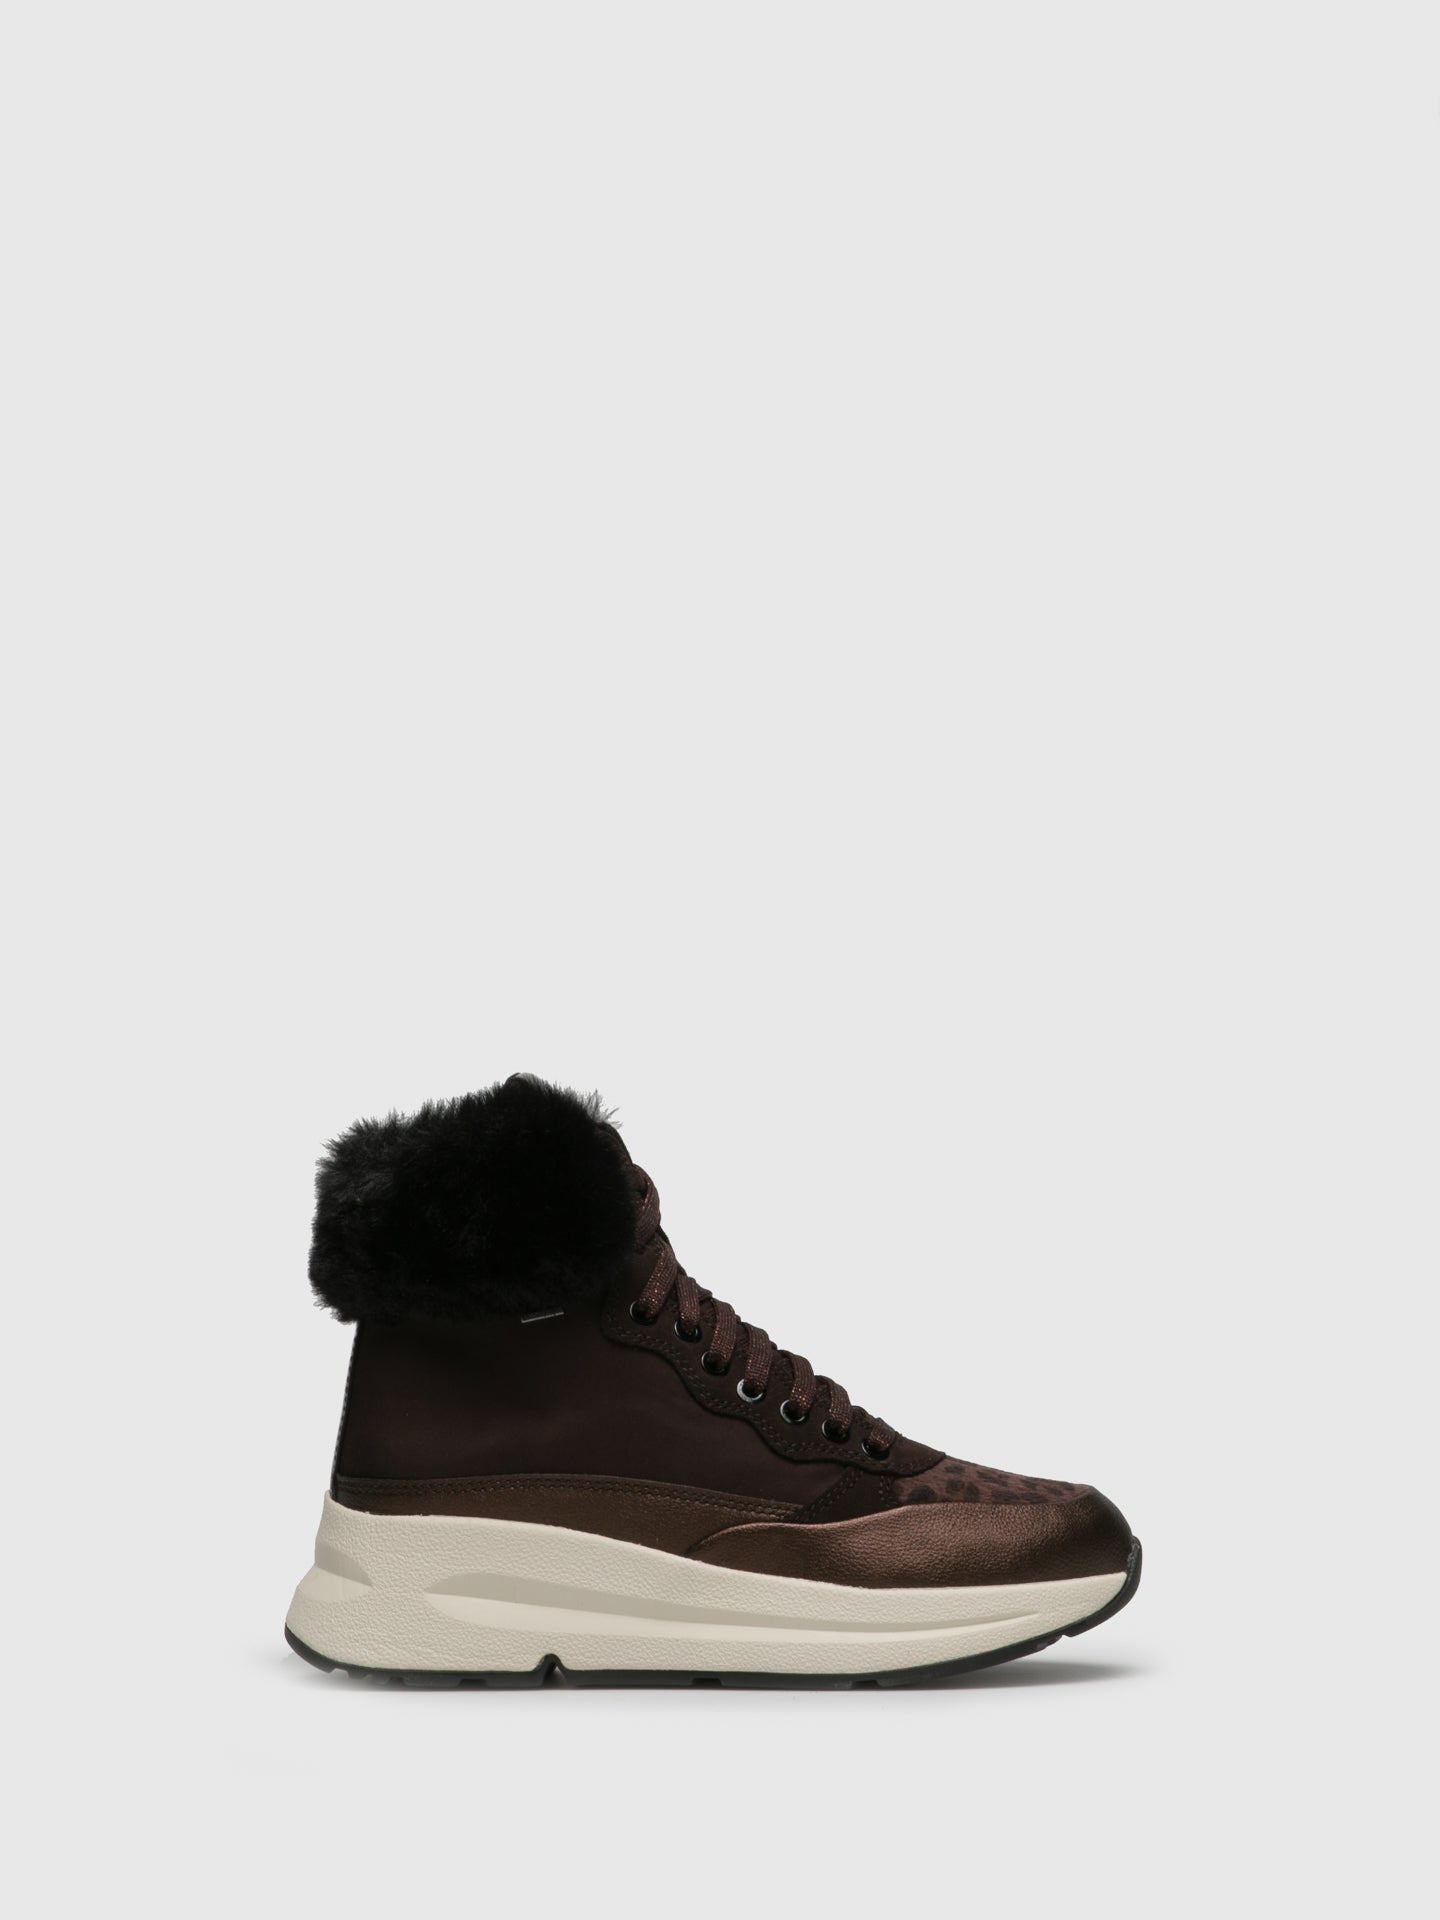 Geox Brown Lace-up Boots